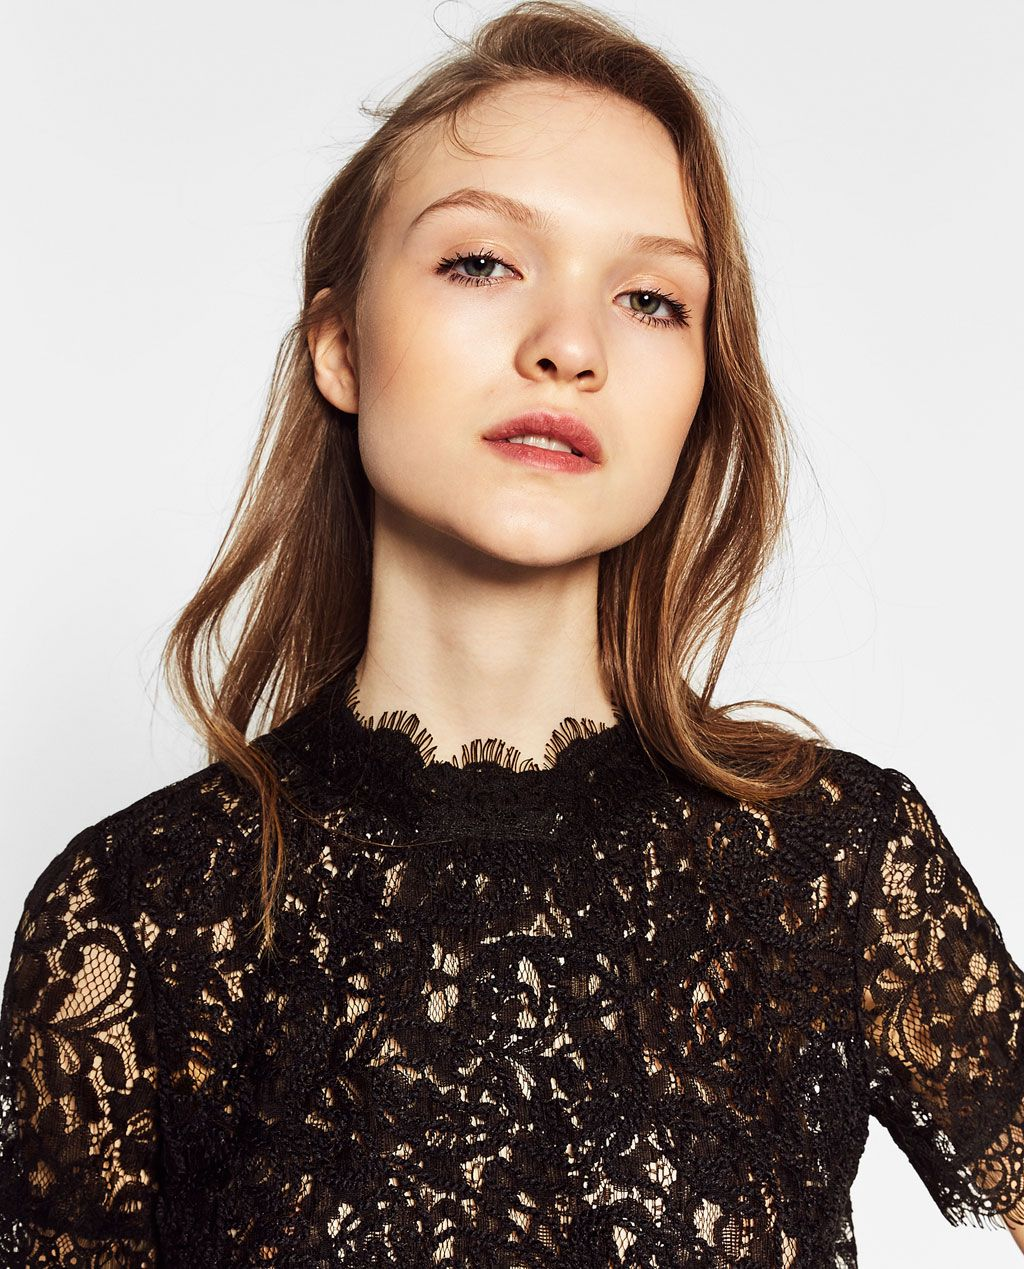 ZARA - COLLECTION SS/17 - EMBROIDERED LACE T-SHIRT